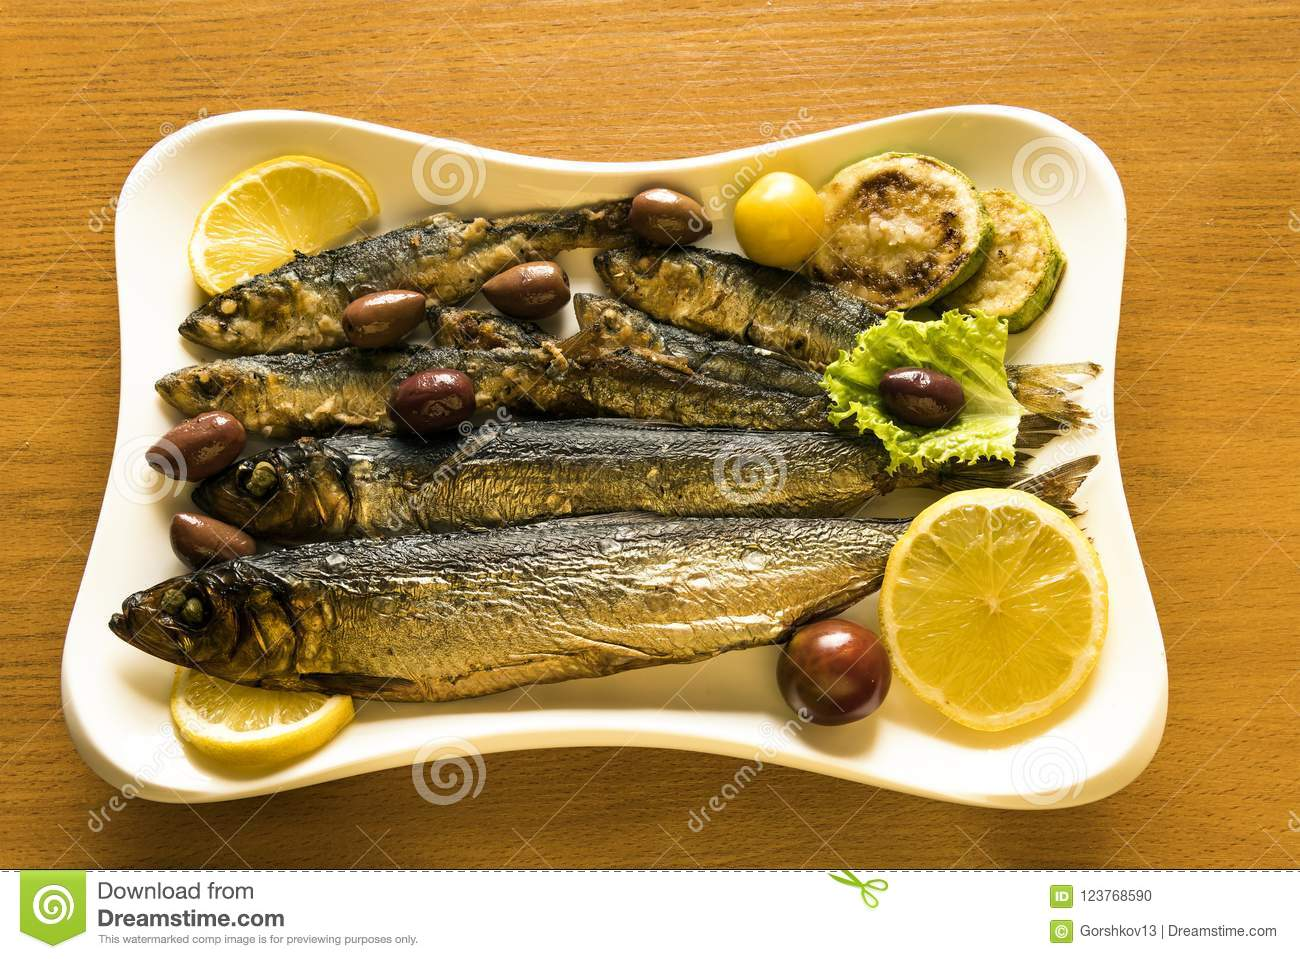 How can you make sprats at home from capelin 14